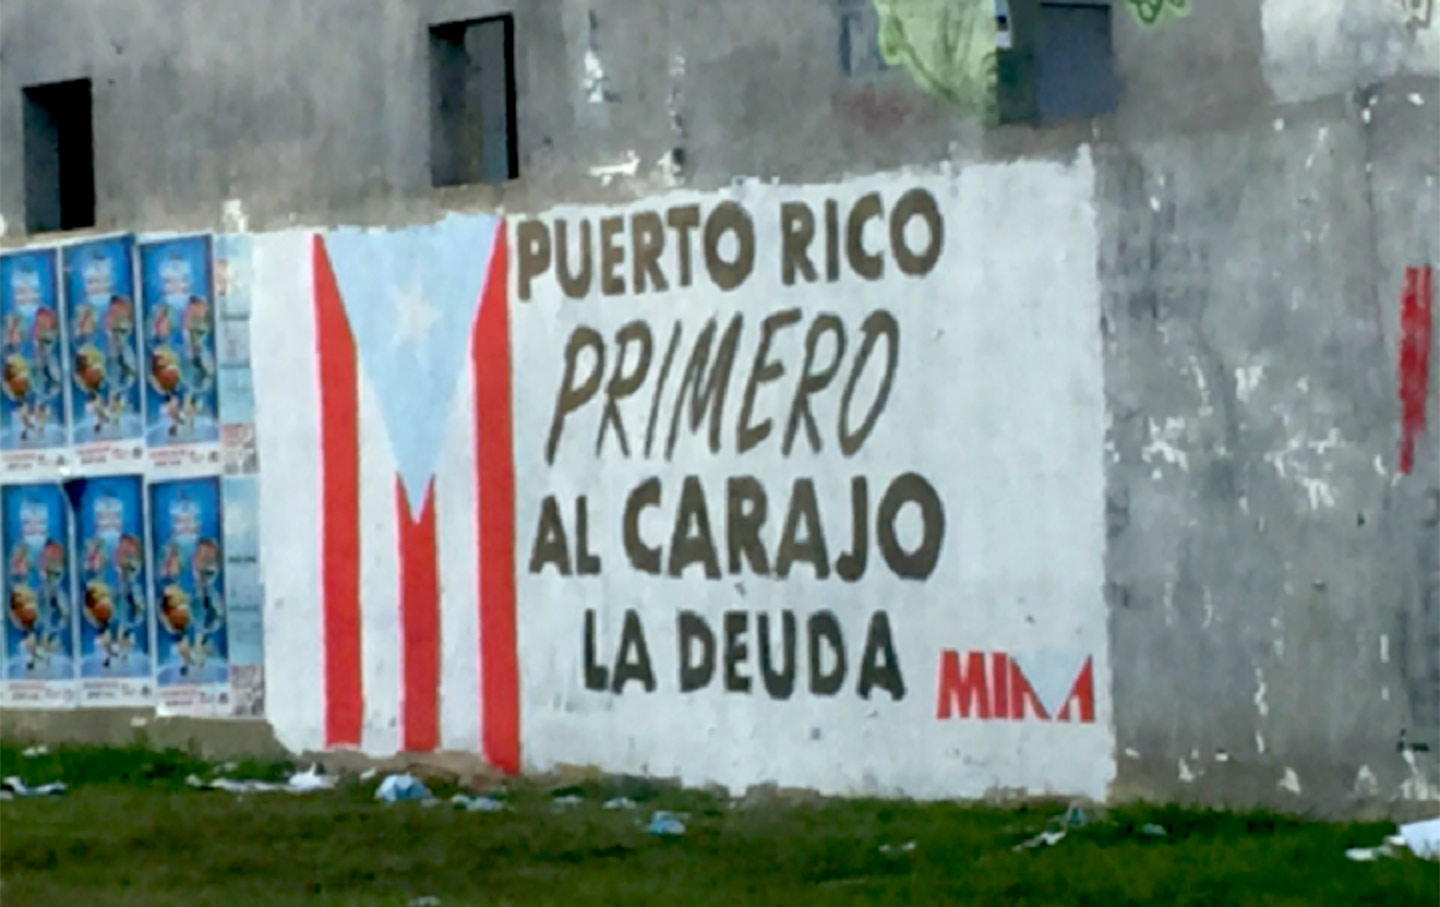 http://www.elblogdemontaner.com/wp-content/uploads/2015/08/puerto_rico_to_hell_with_debt_otu_img.jpg